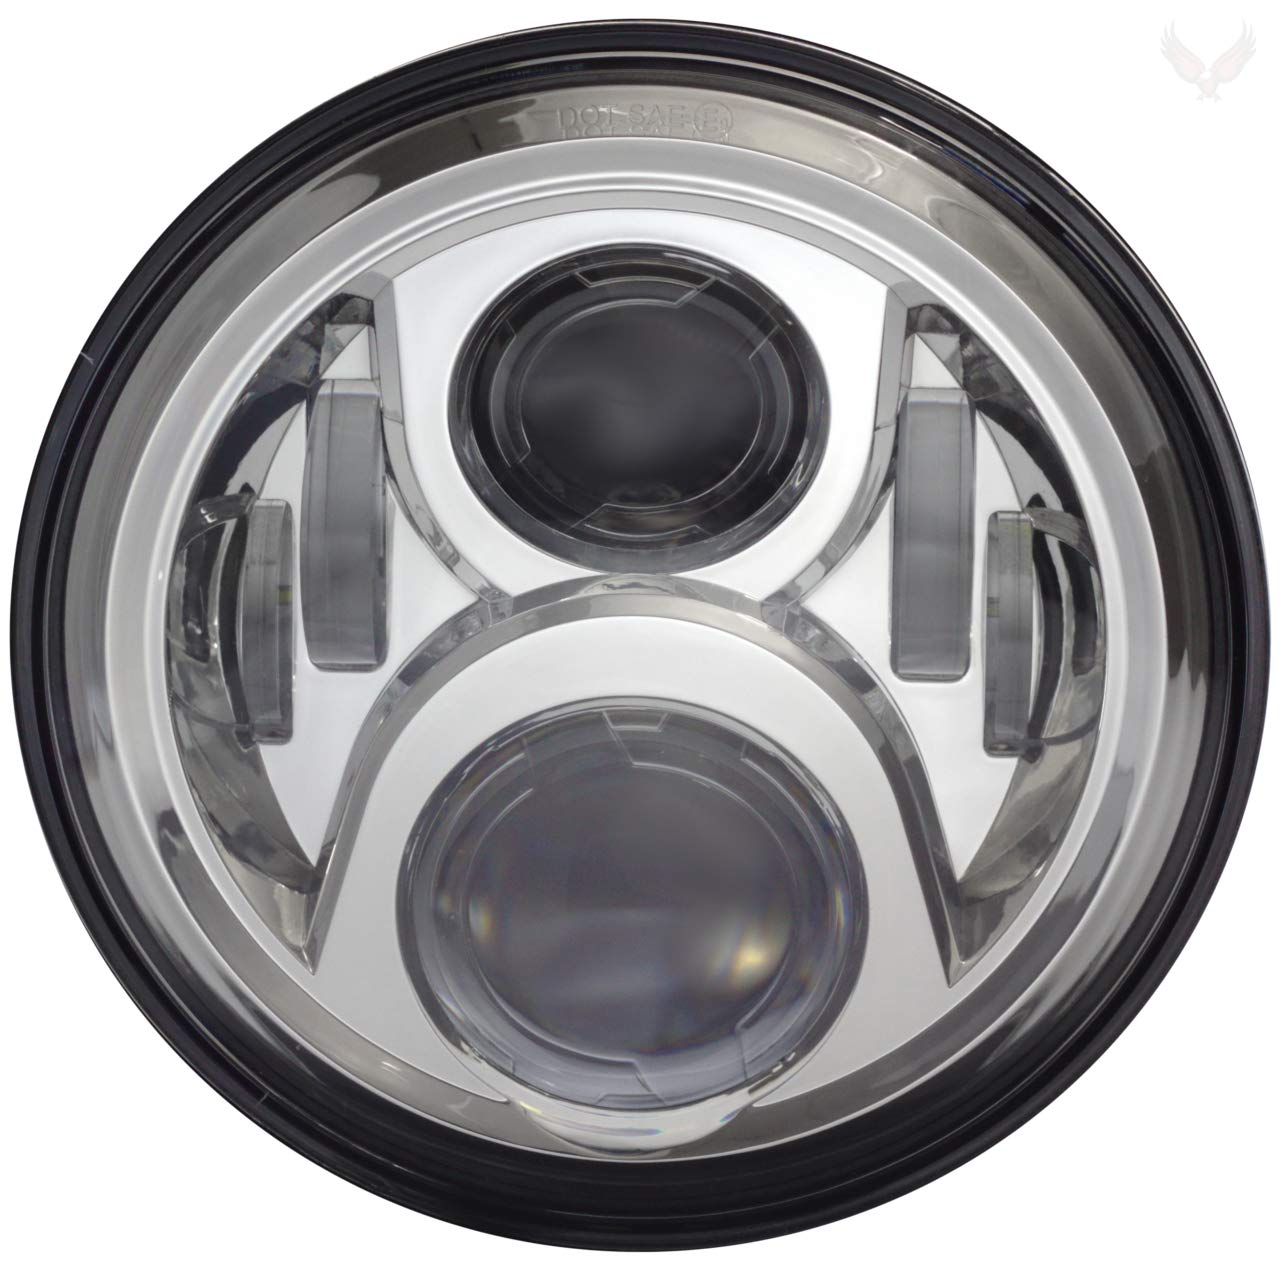 Eagle Lights 7-inch Round Generation 2 Projection LED Headlight